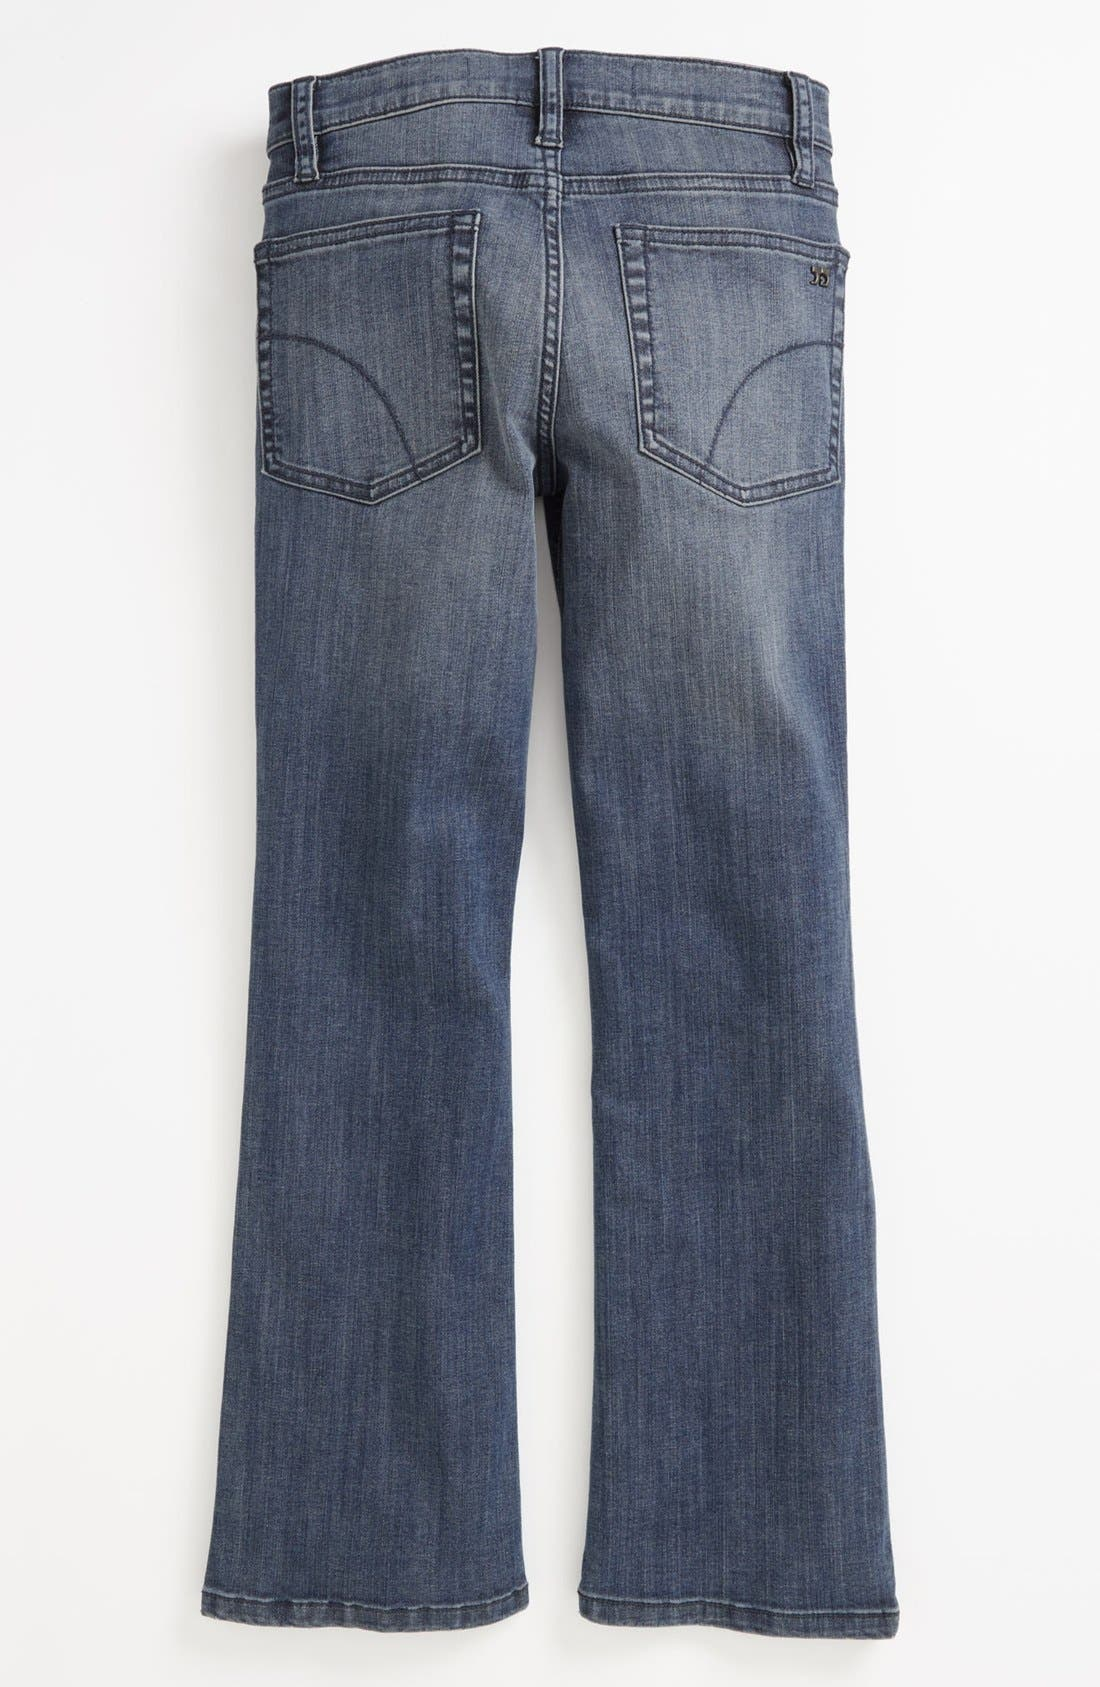 Alternate Image 1 Selected - Joe's 'Rebel' Straight Leg Jeans (Little Boys)